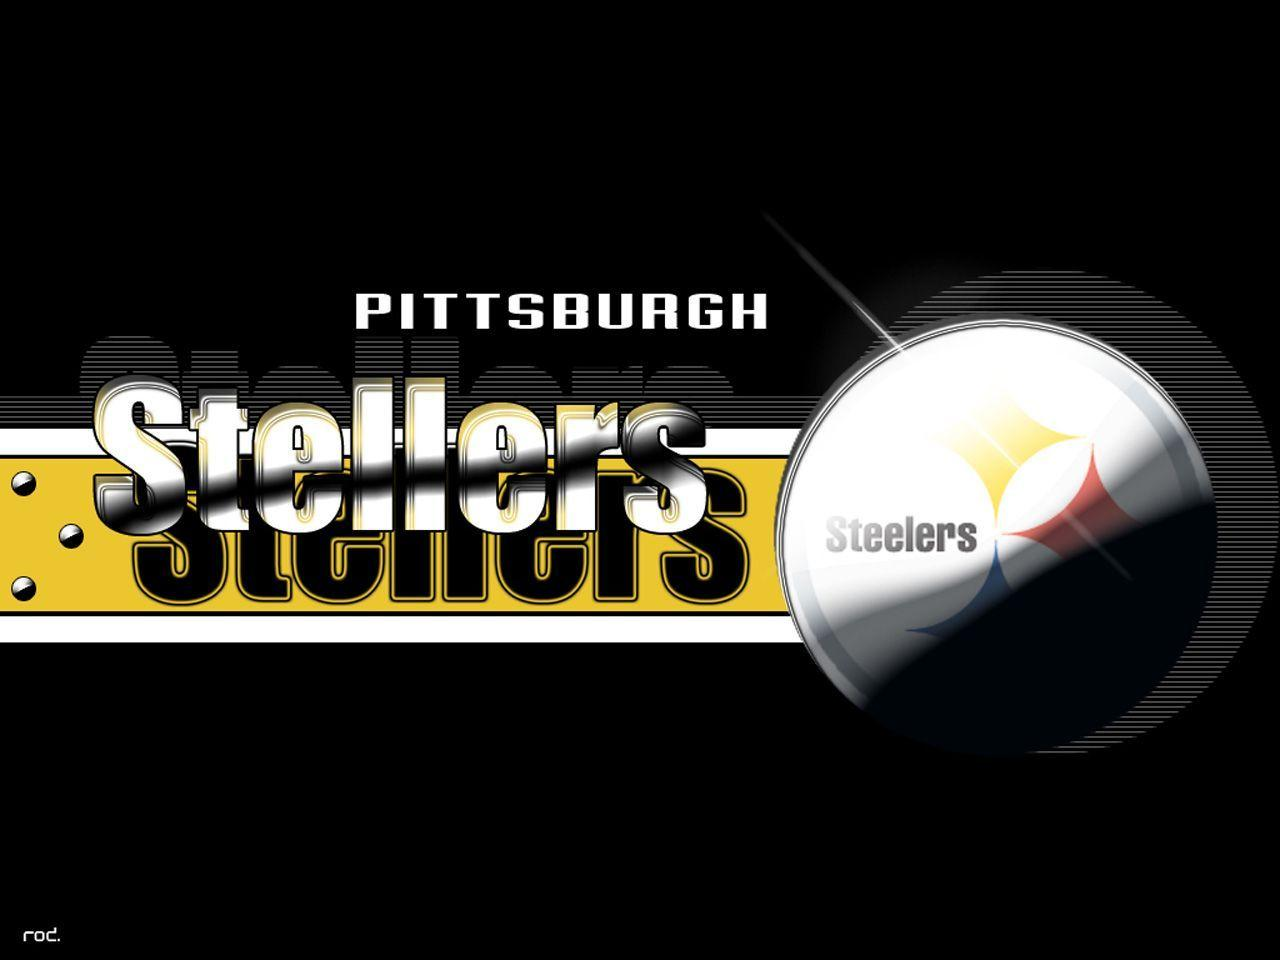 Check this out! our new Pittsburgh Steelers wallpapers